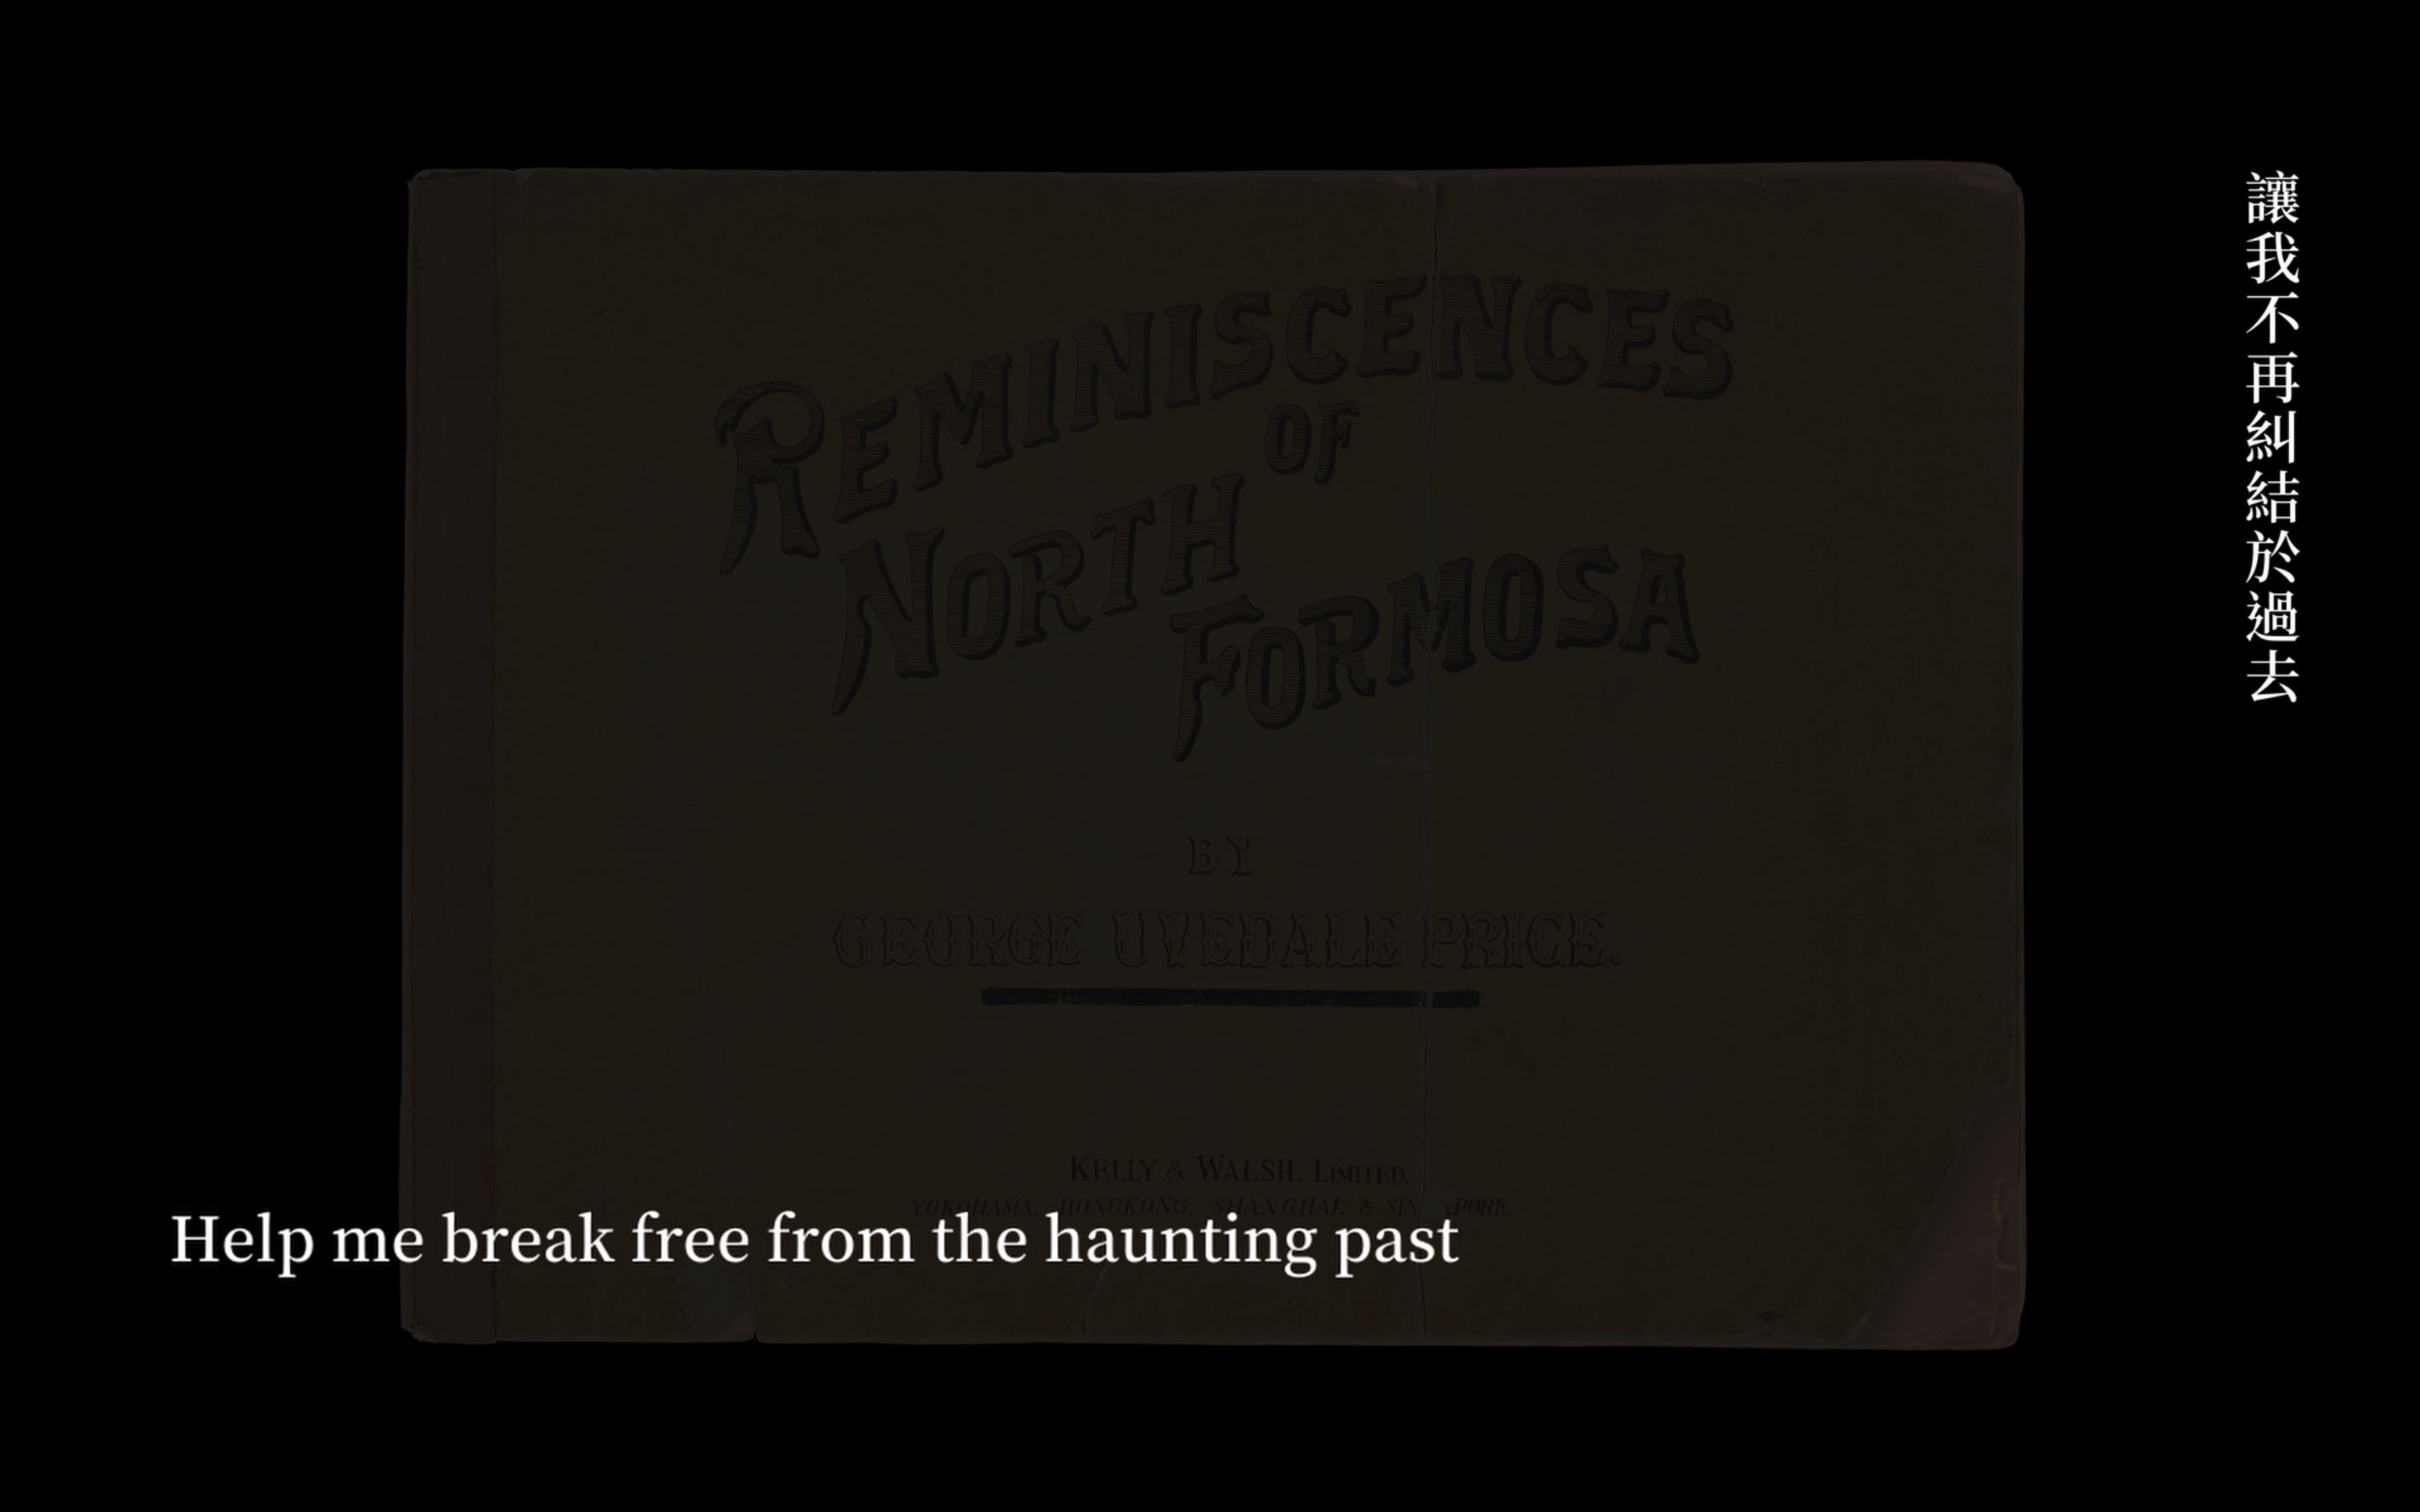 """Paging through the """"Reminiscences of North Formosa"""""""